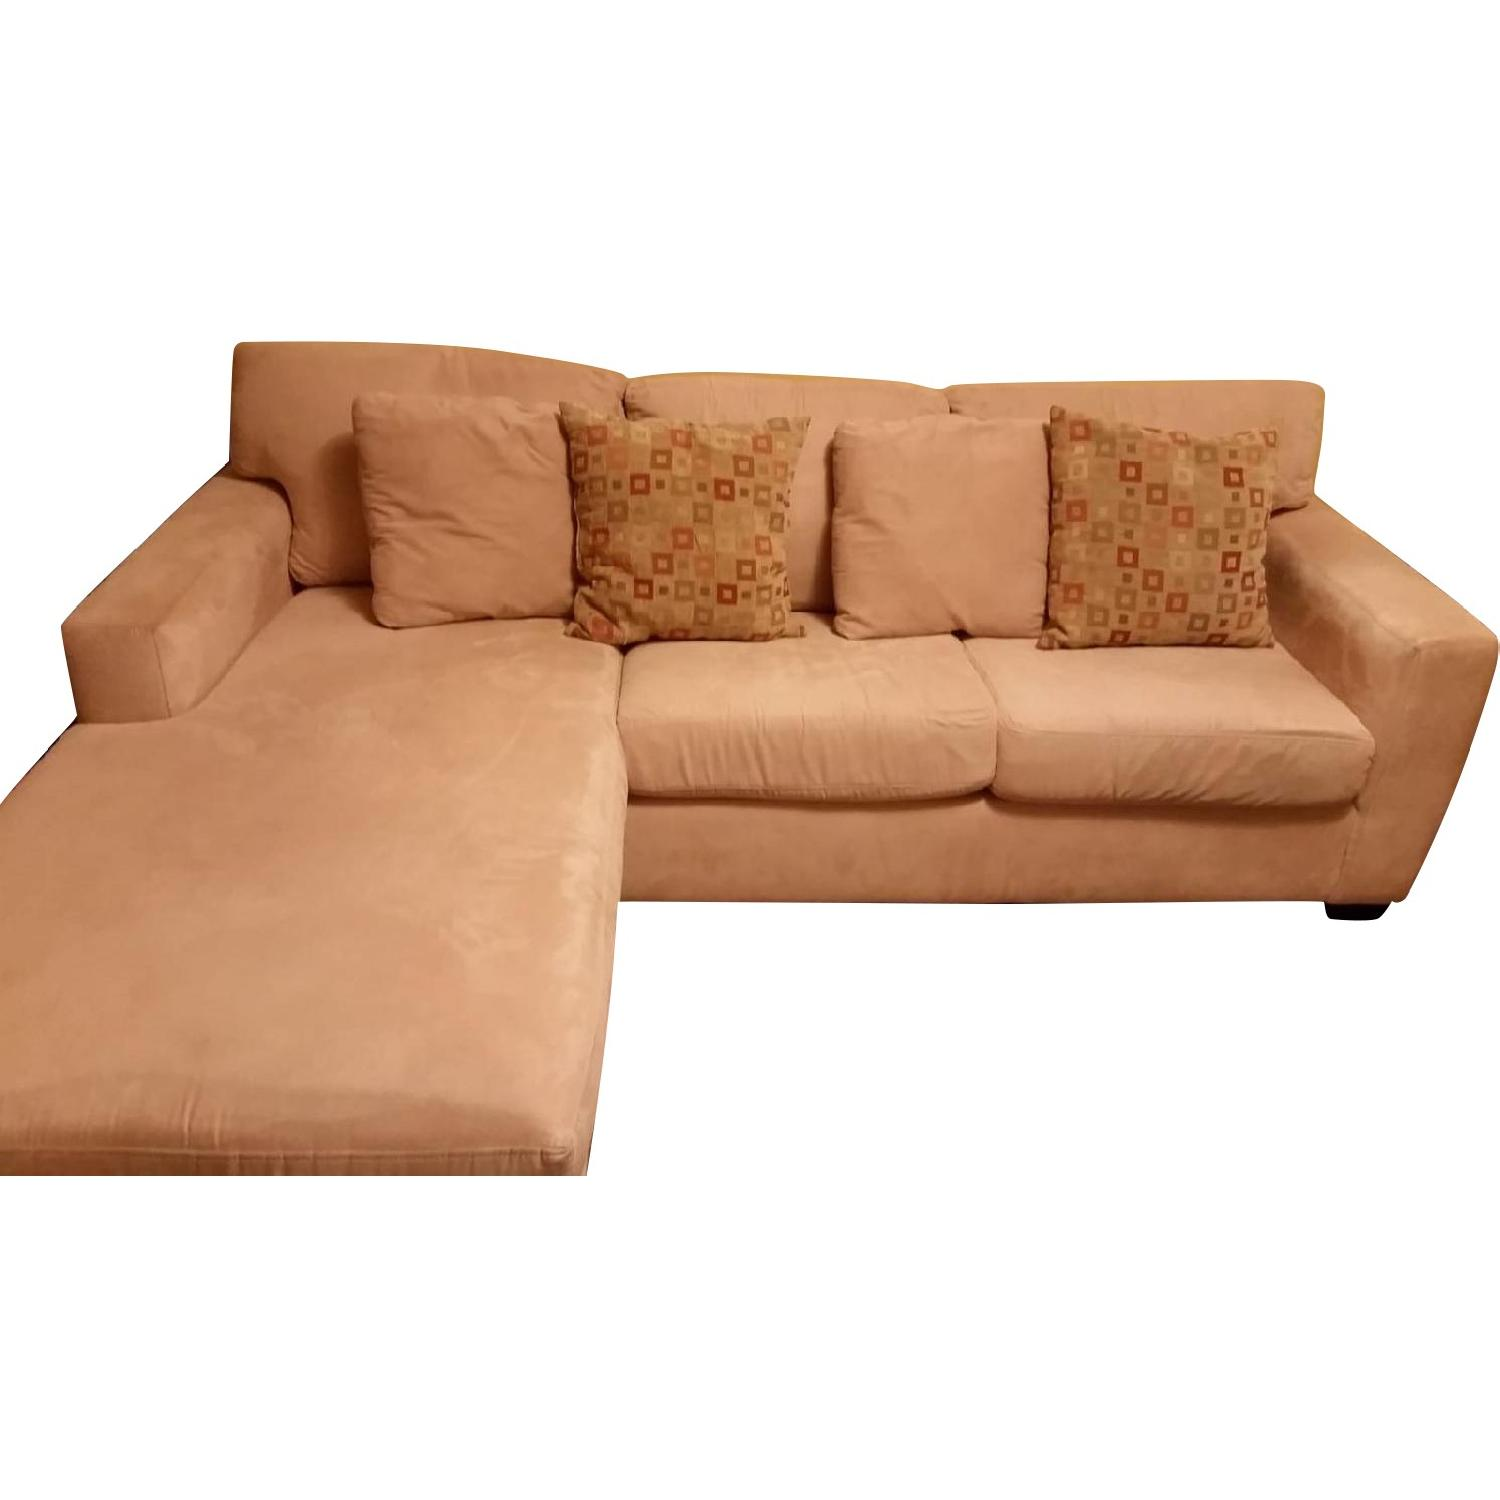 Macy's Portofino Queen Sleeper Sectional Sofa - image-0